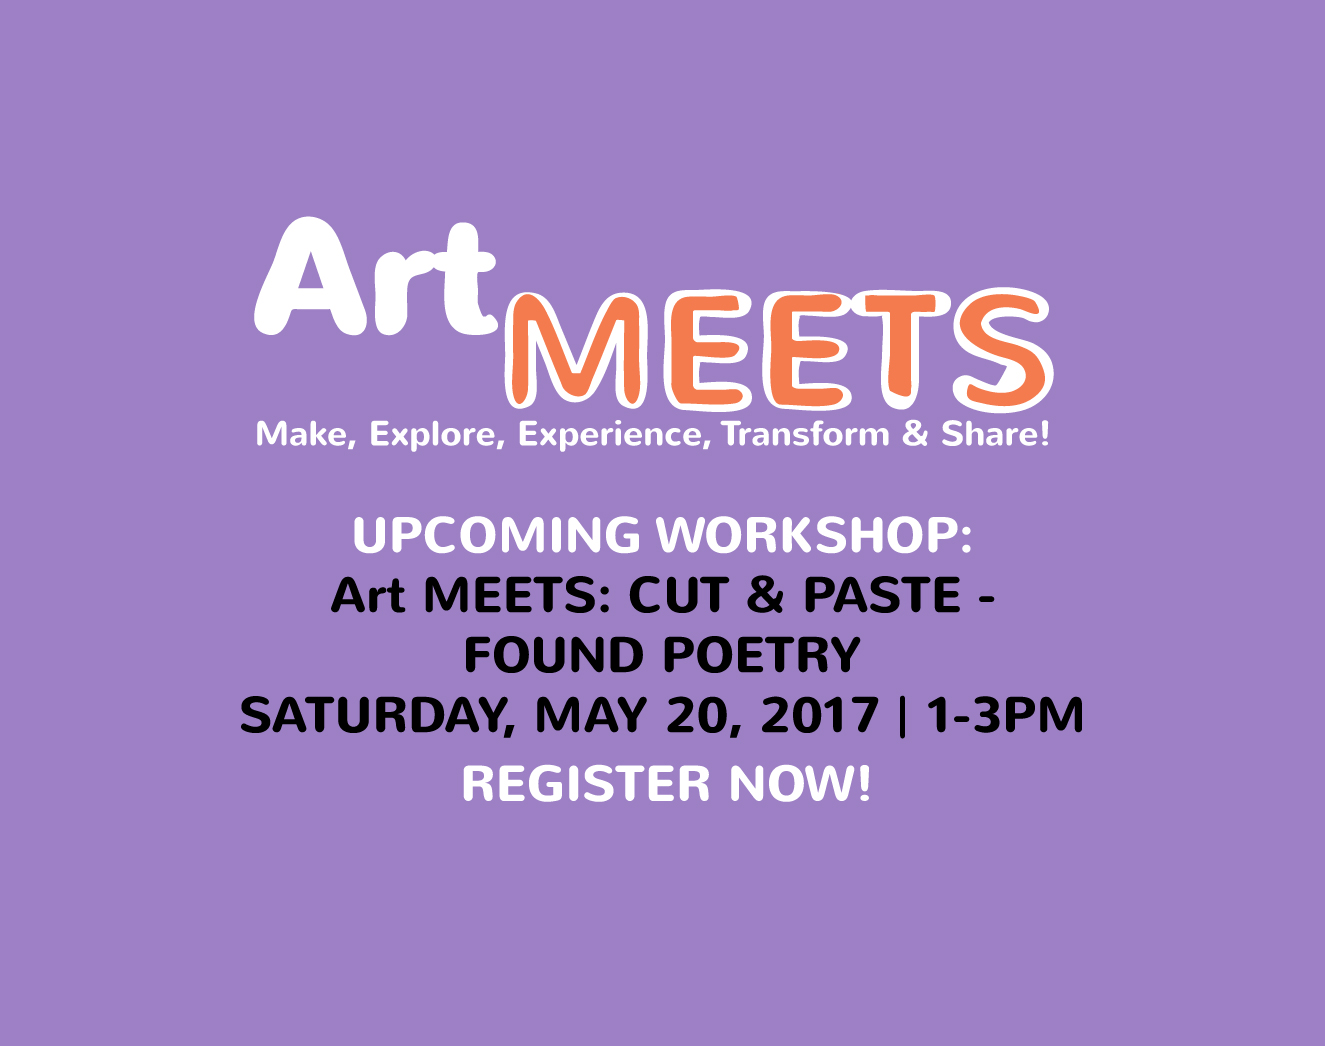 Art MEETS: Cut & Paste – Found Poetry